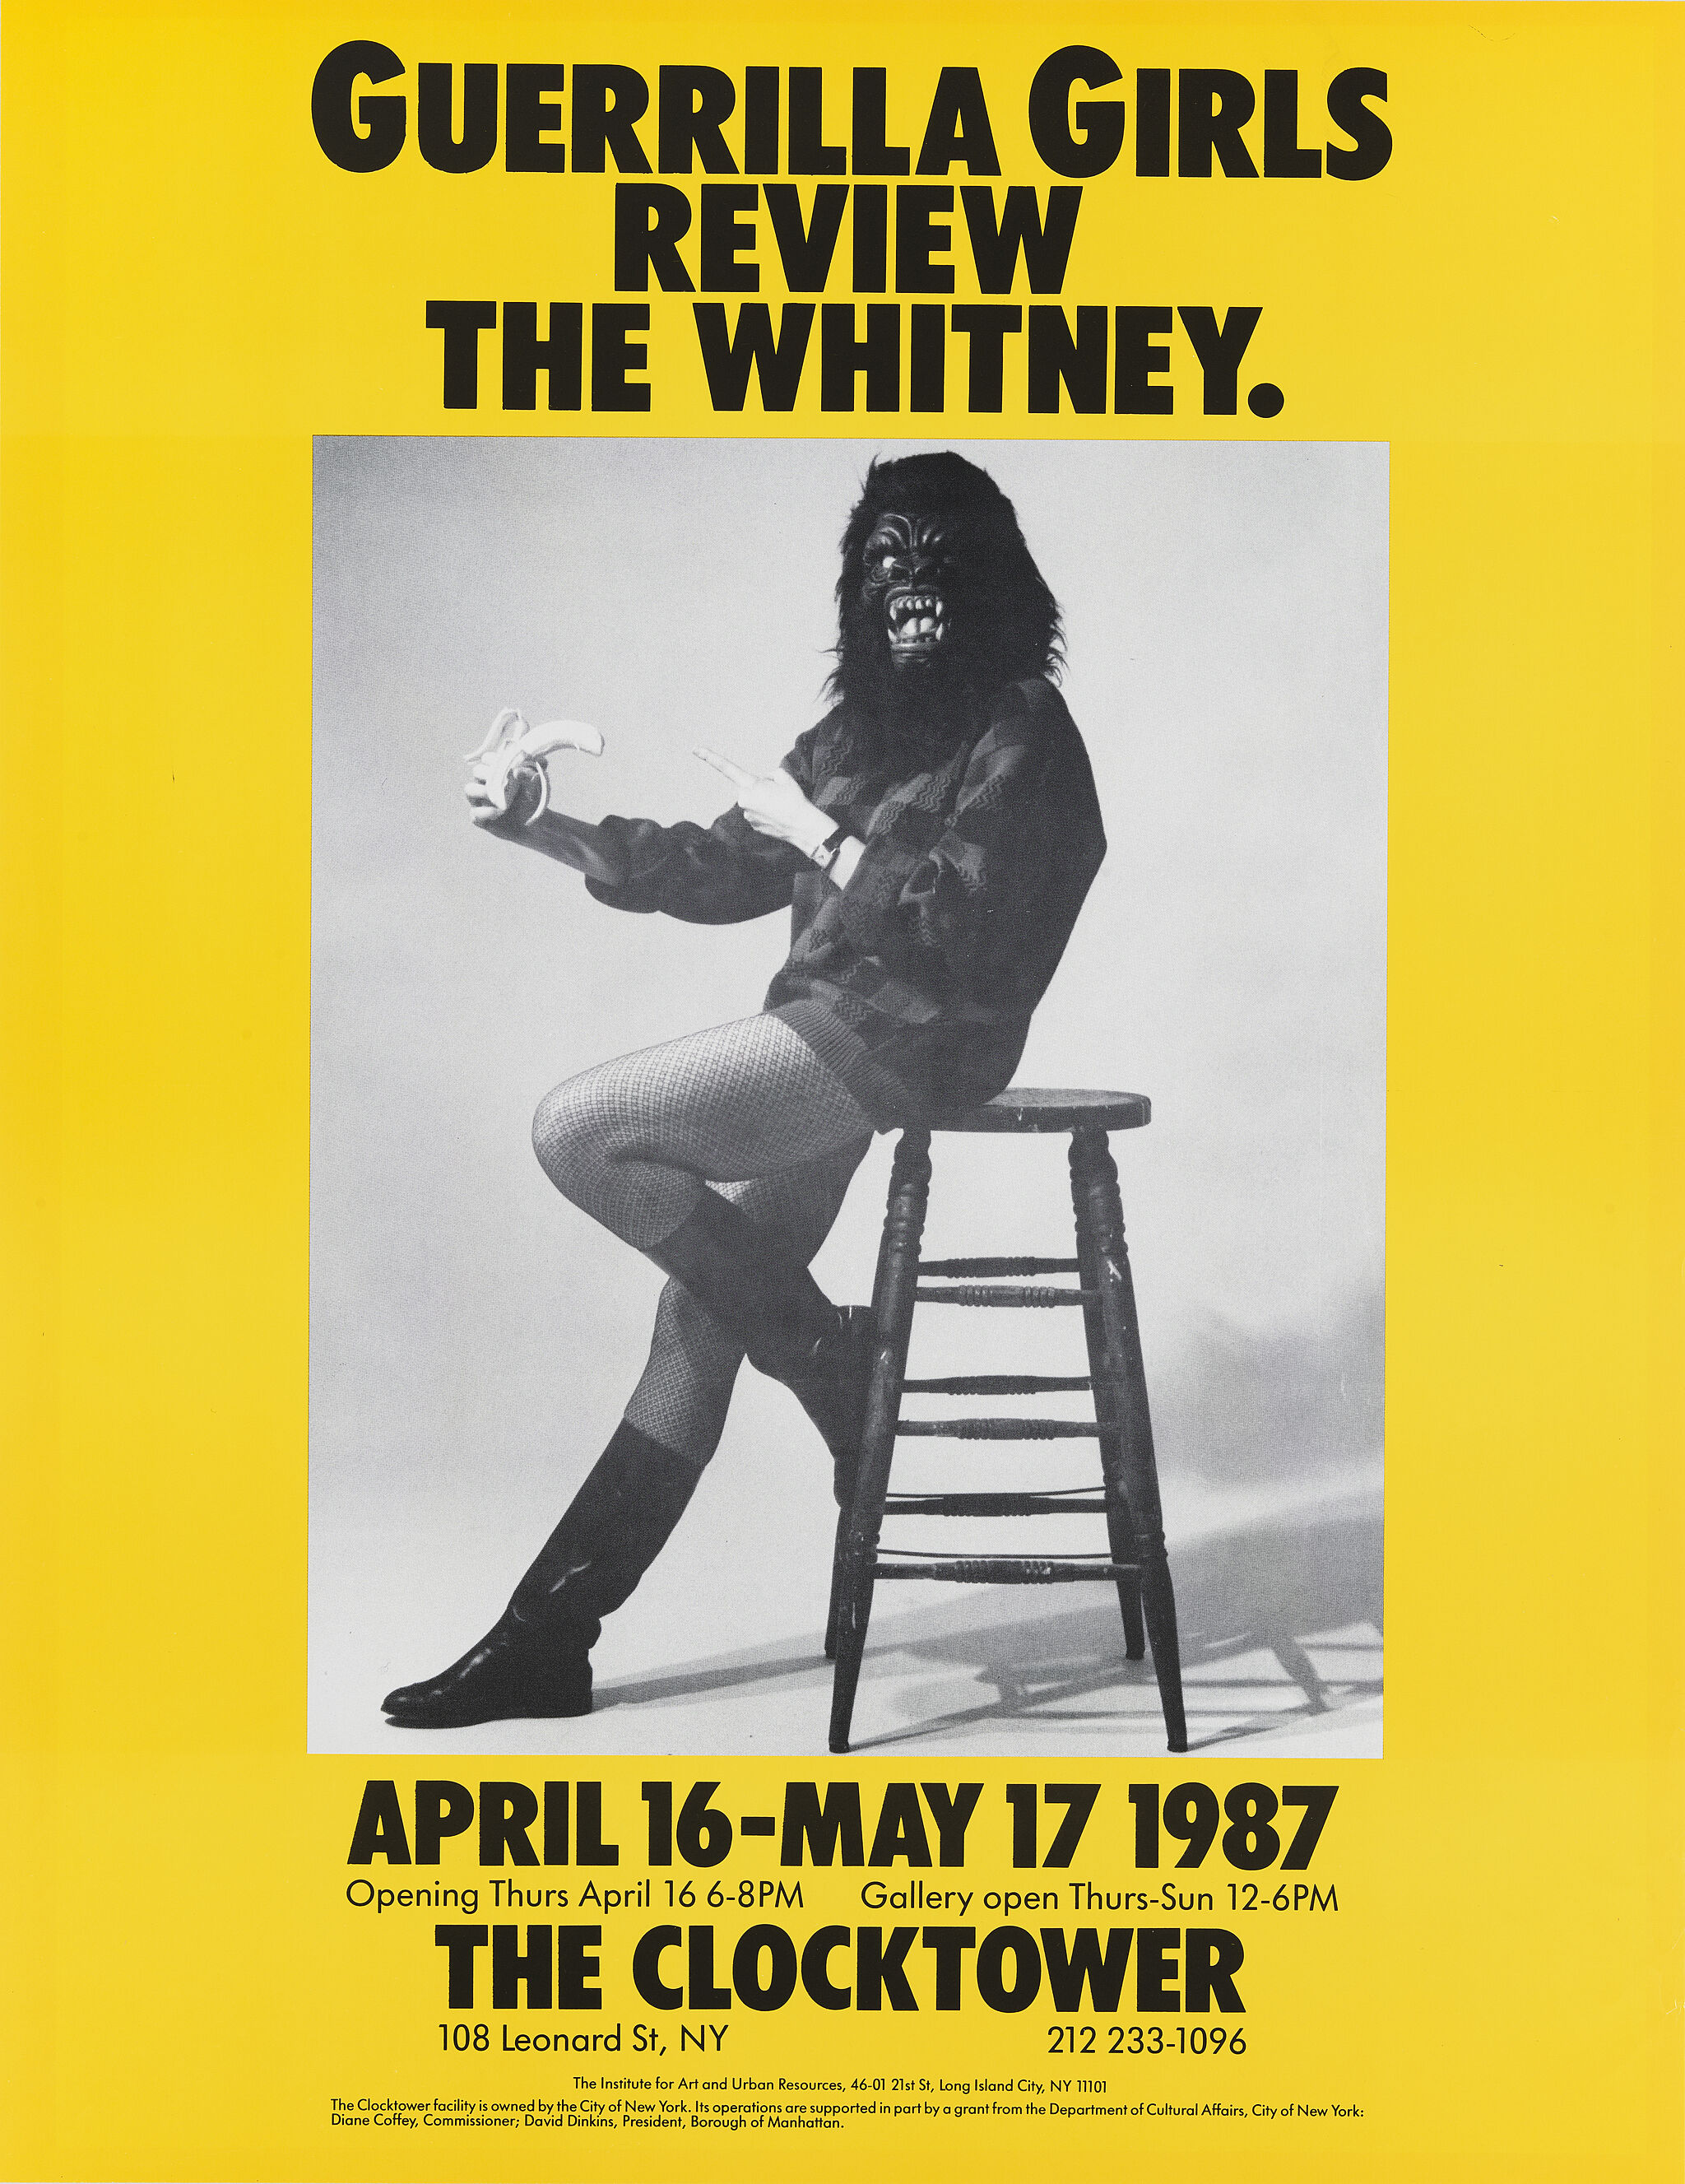 A yellow poster of a person in a gorilla suit siting on a stool.